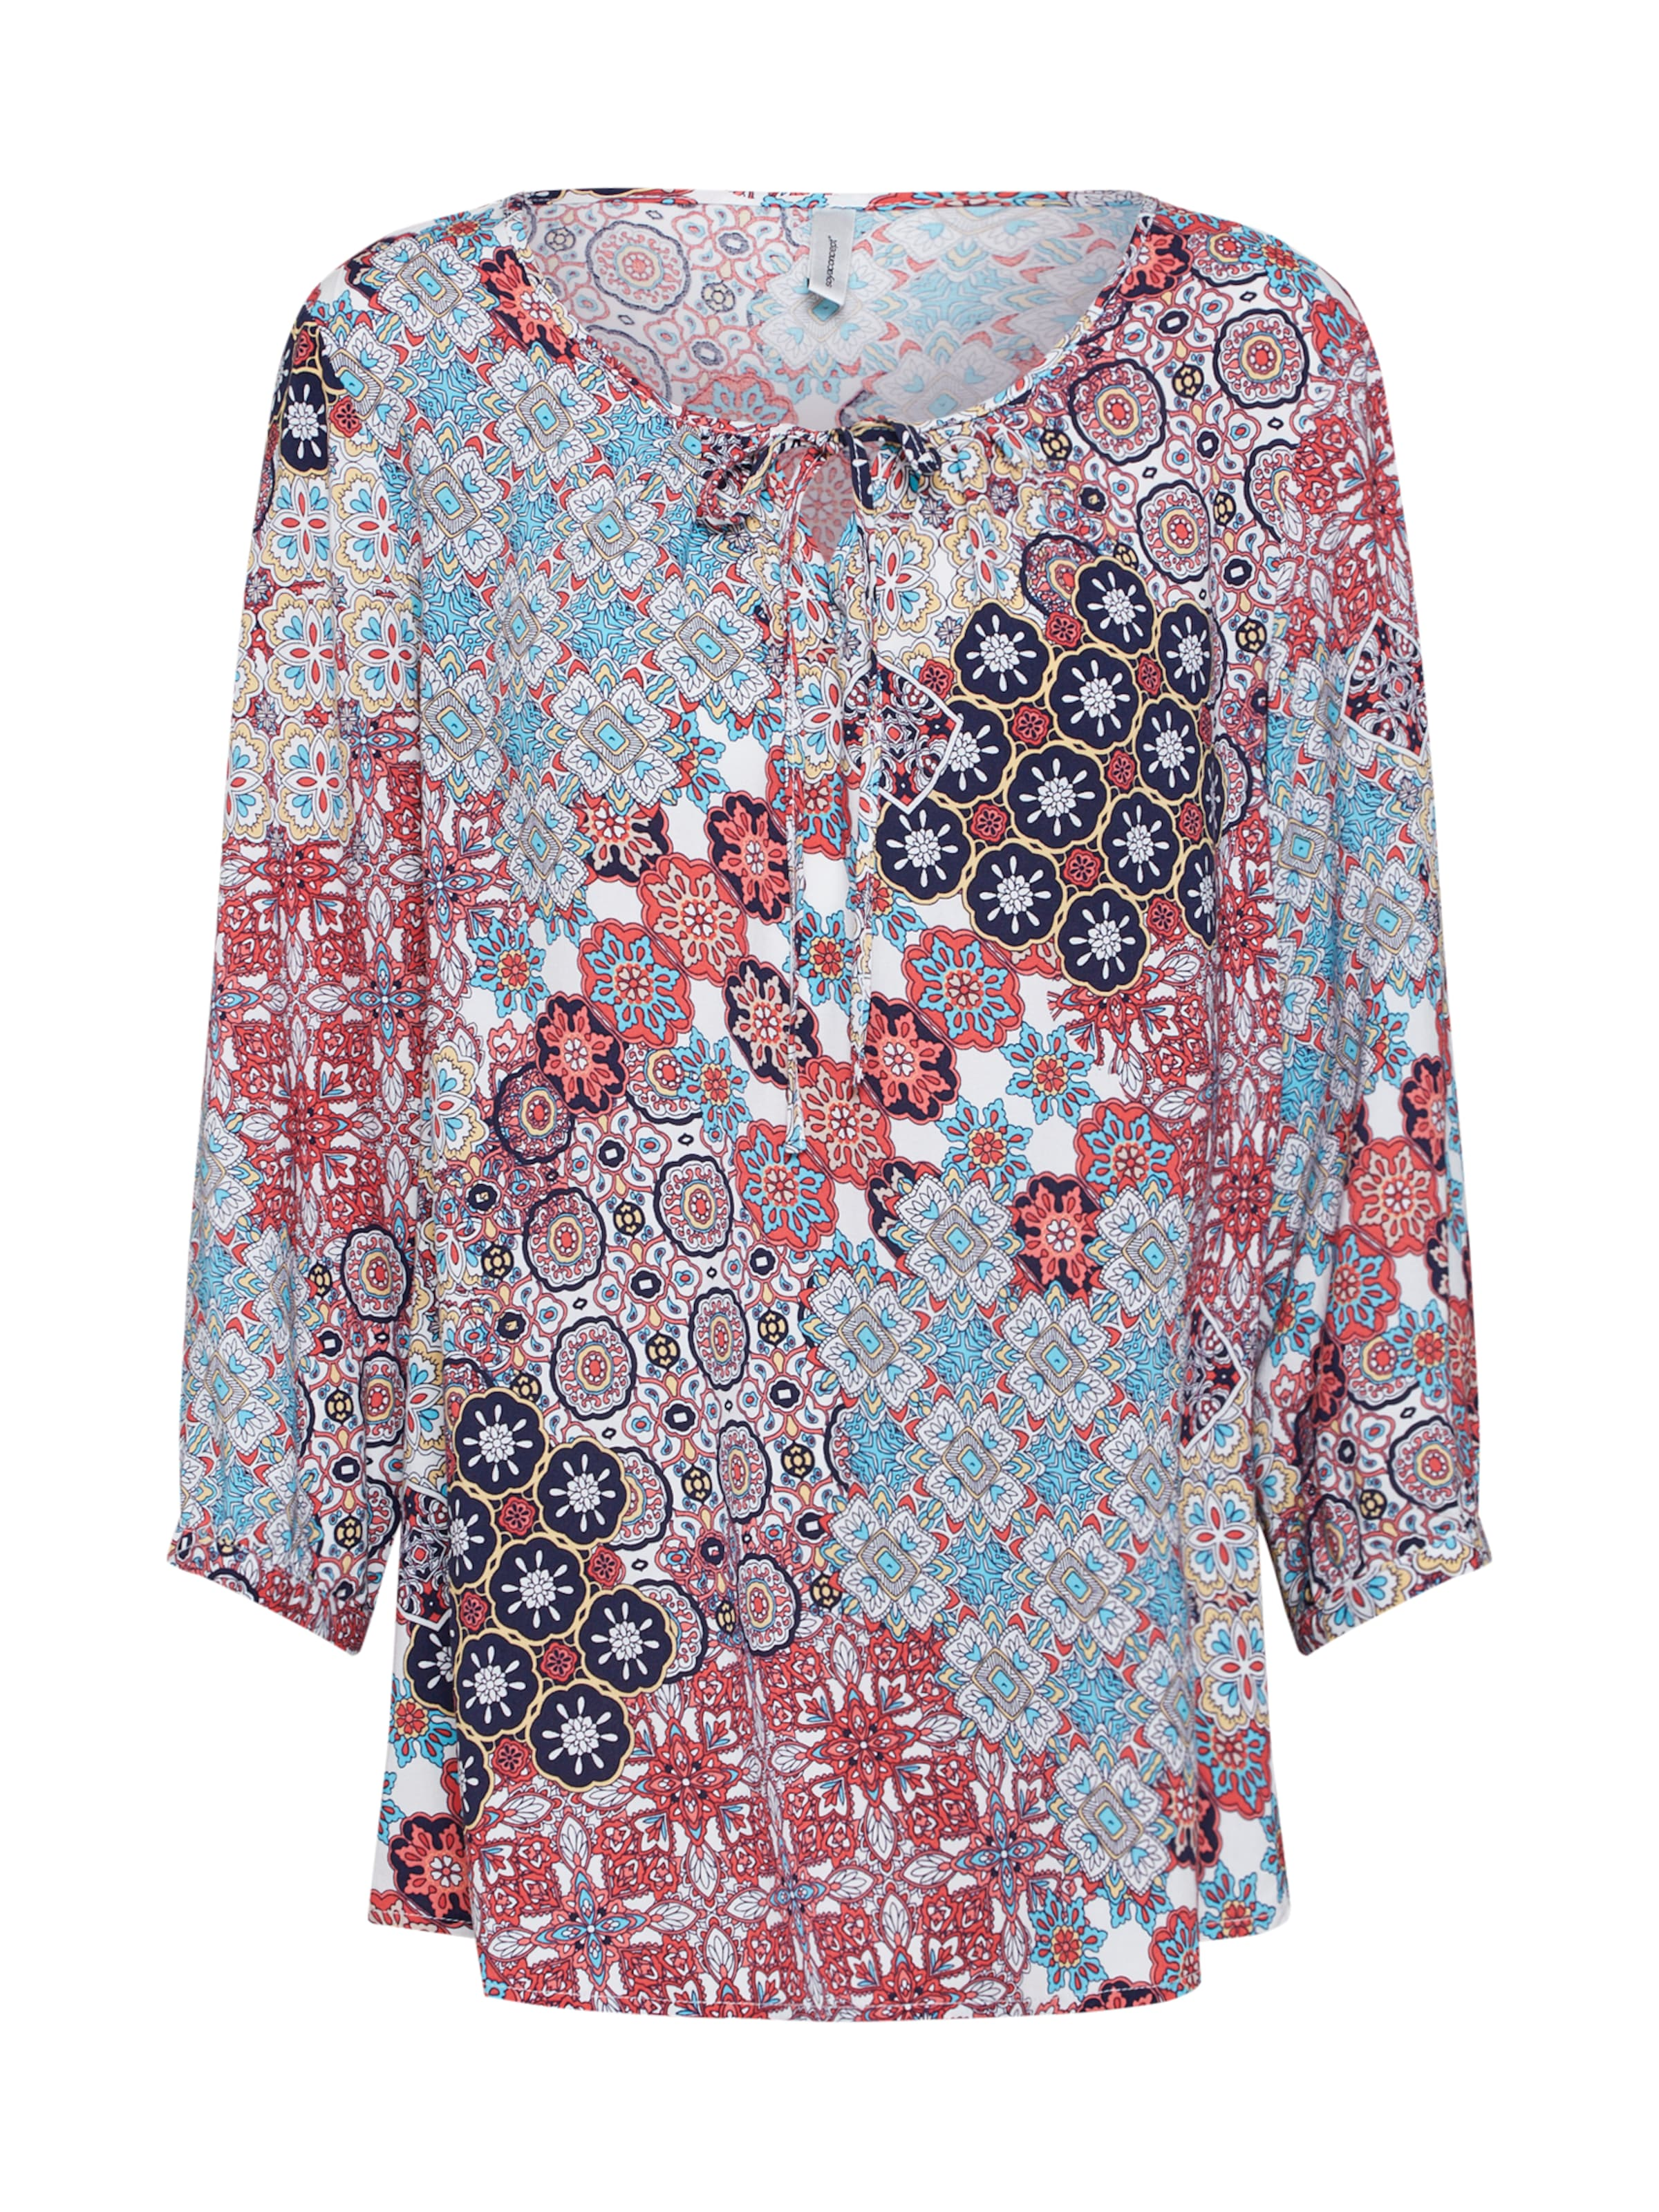 Bluse Soyaconcept MischfarbenRot 'vienna' In Bluse Soyaconcept UzVqpSM